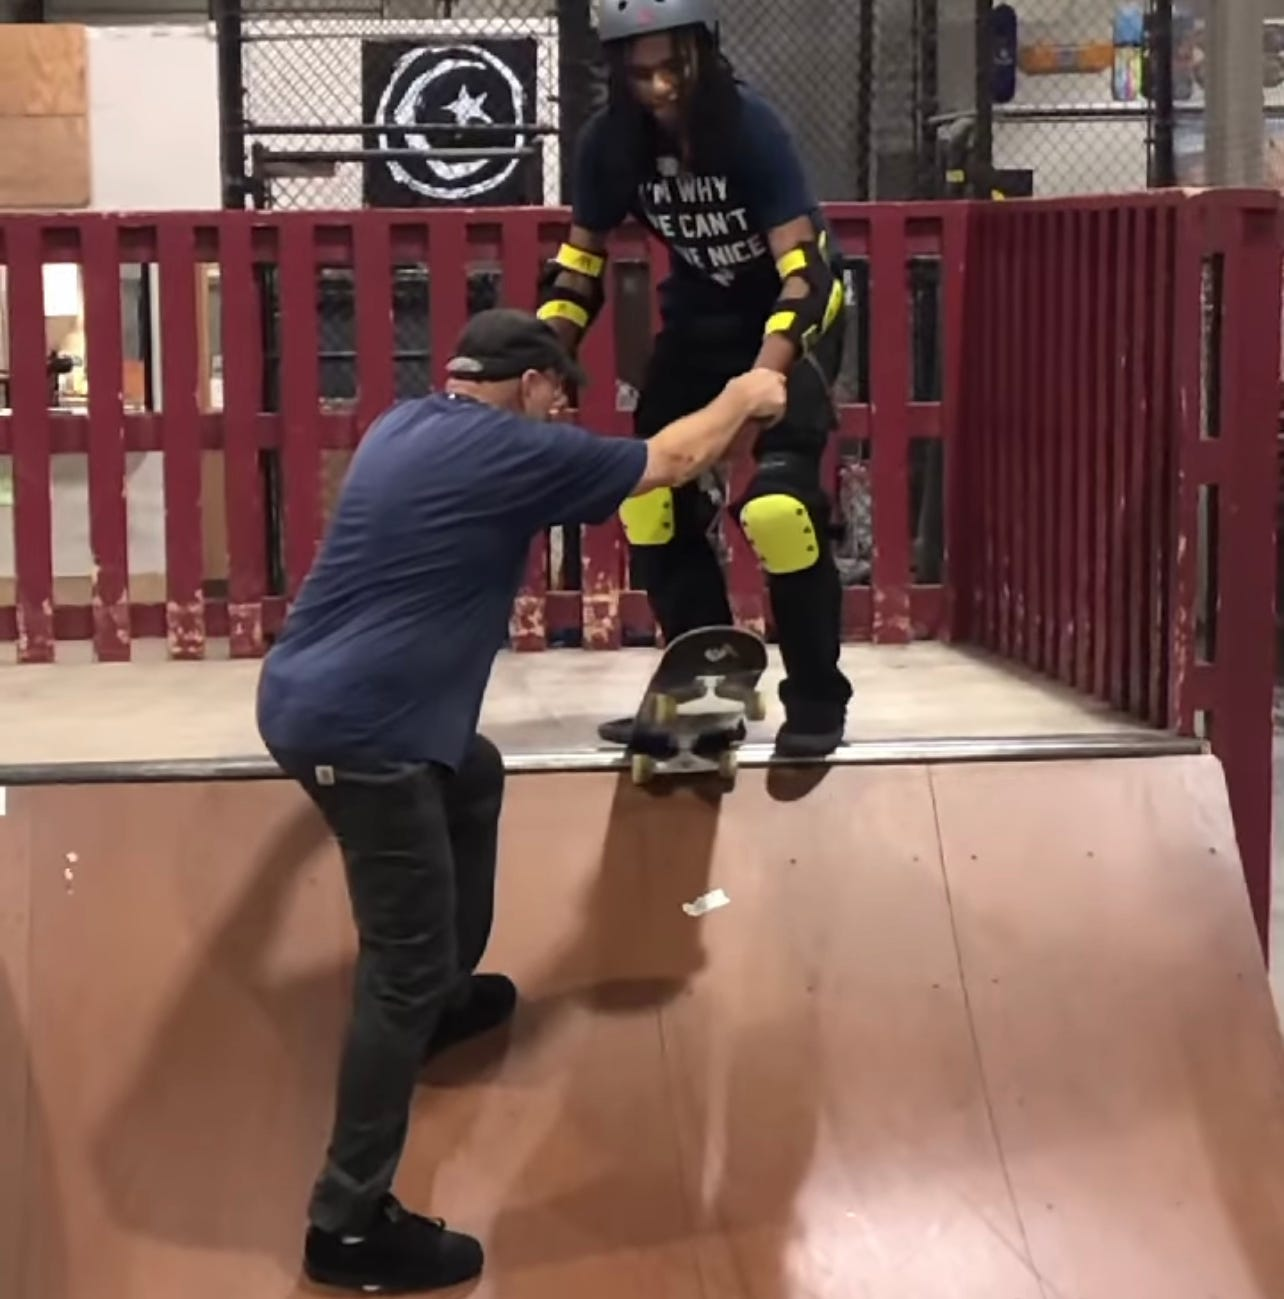 Owner of Modern Skate, George Leichtweis teaching Blind Skater, Coco Atama how to drop in for the first time in his life